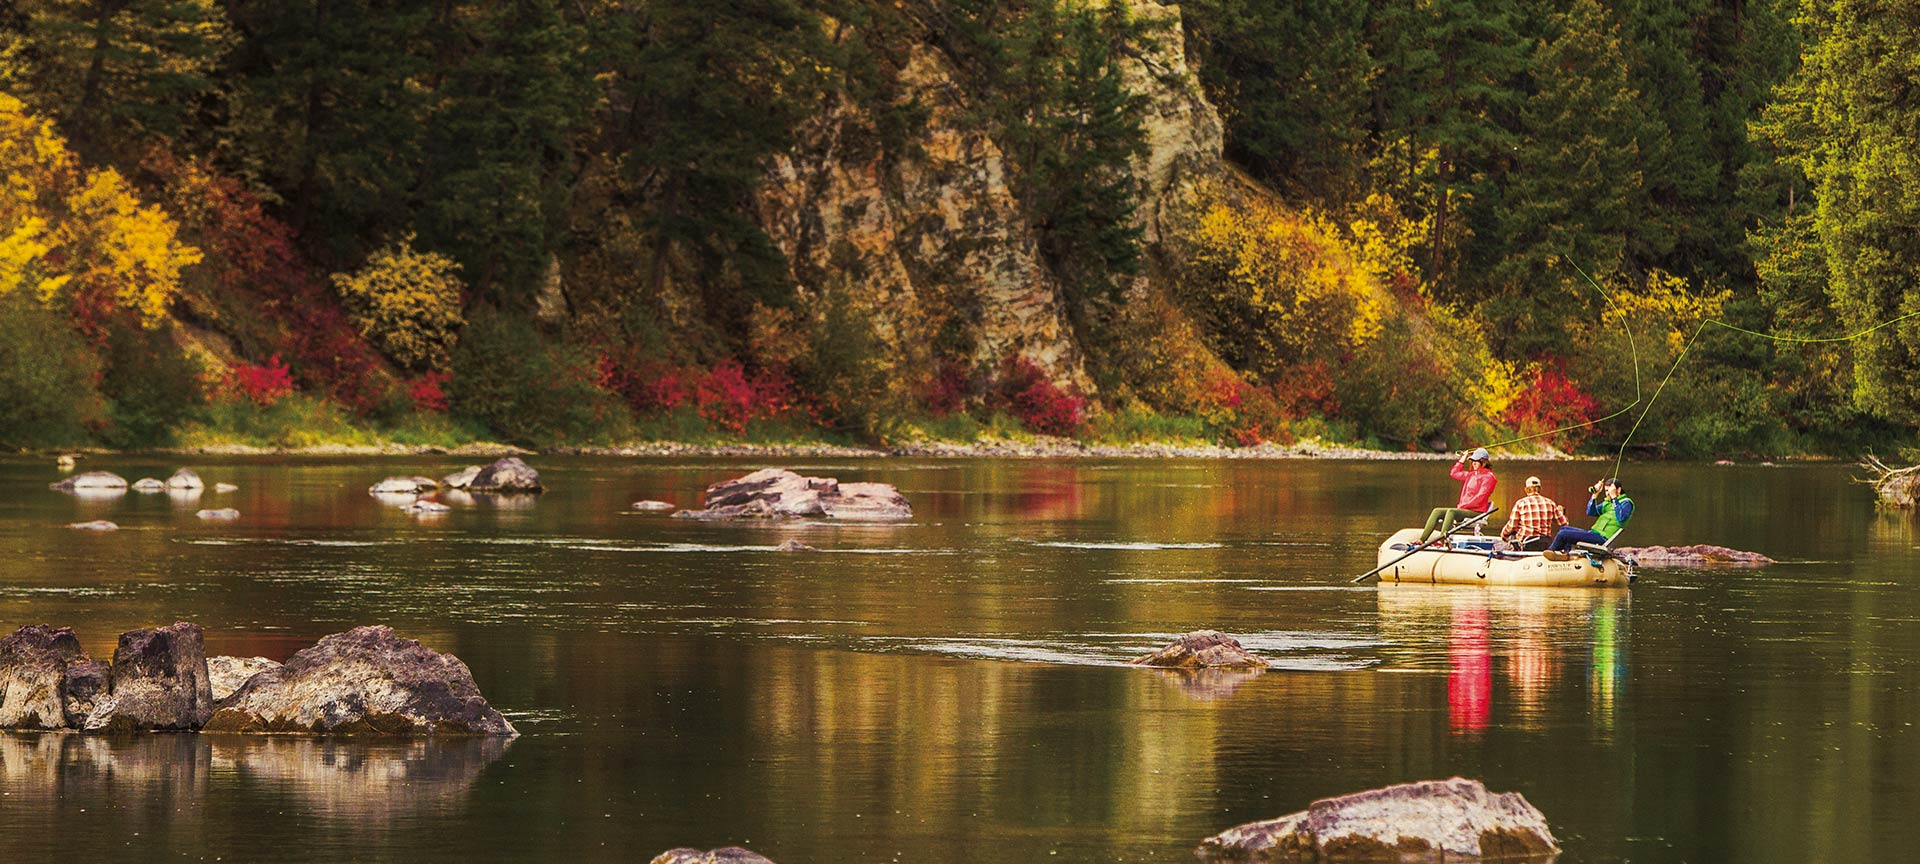 Fly-fishing on the Blackfoot River